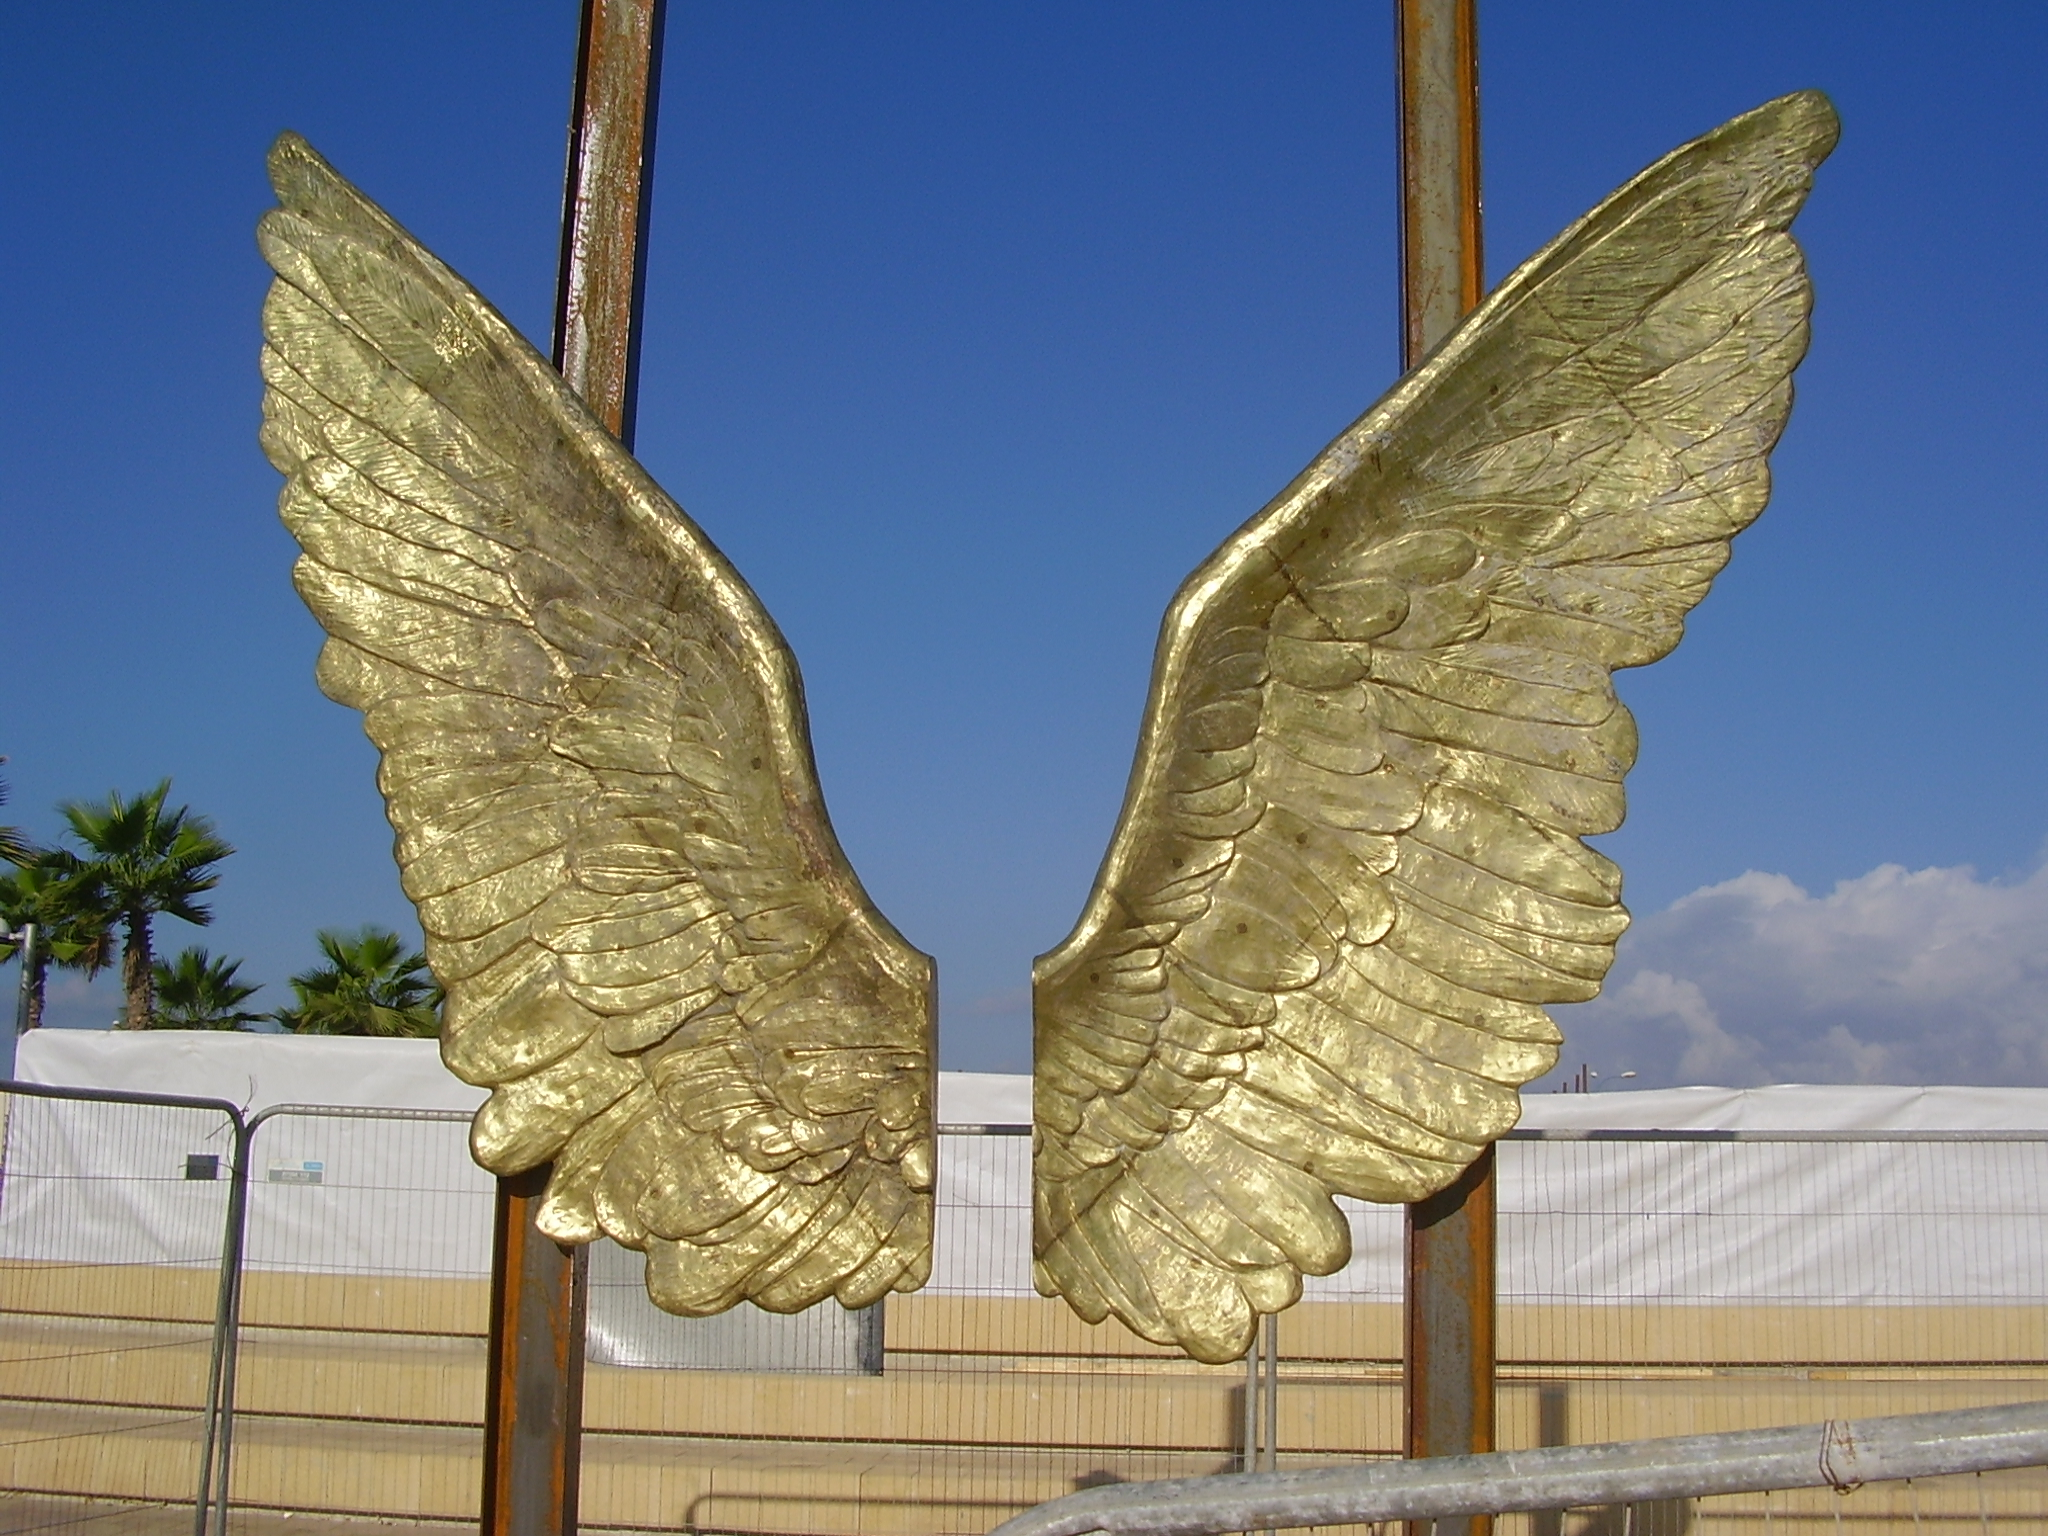 File:PikiWiki Israel 26527 Wings of the city sculpture in ...